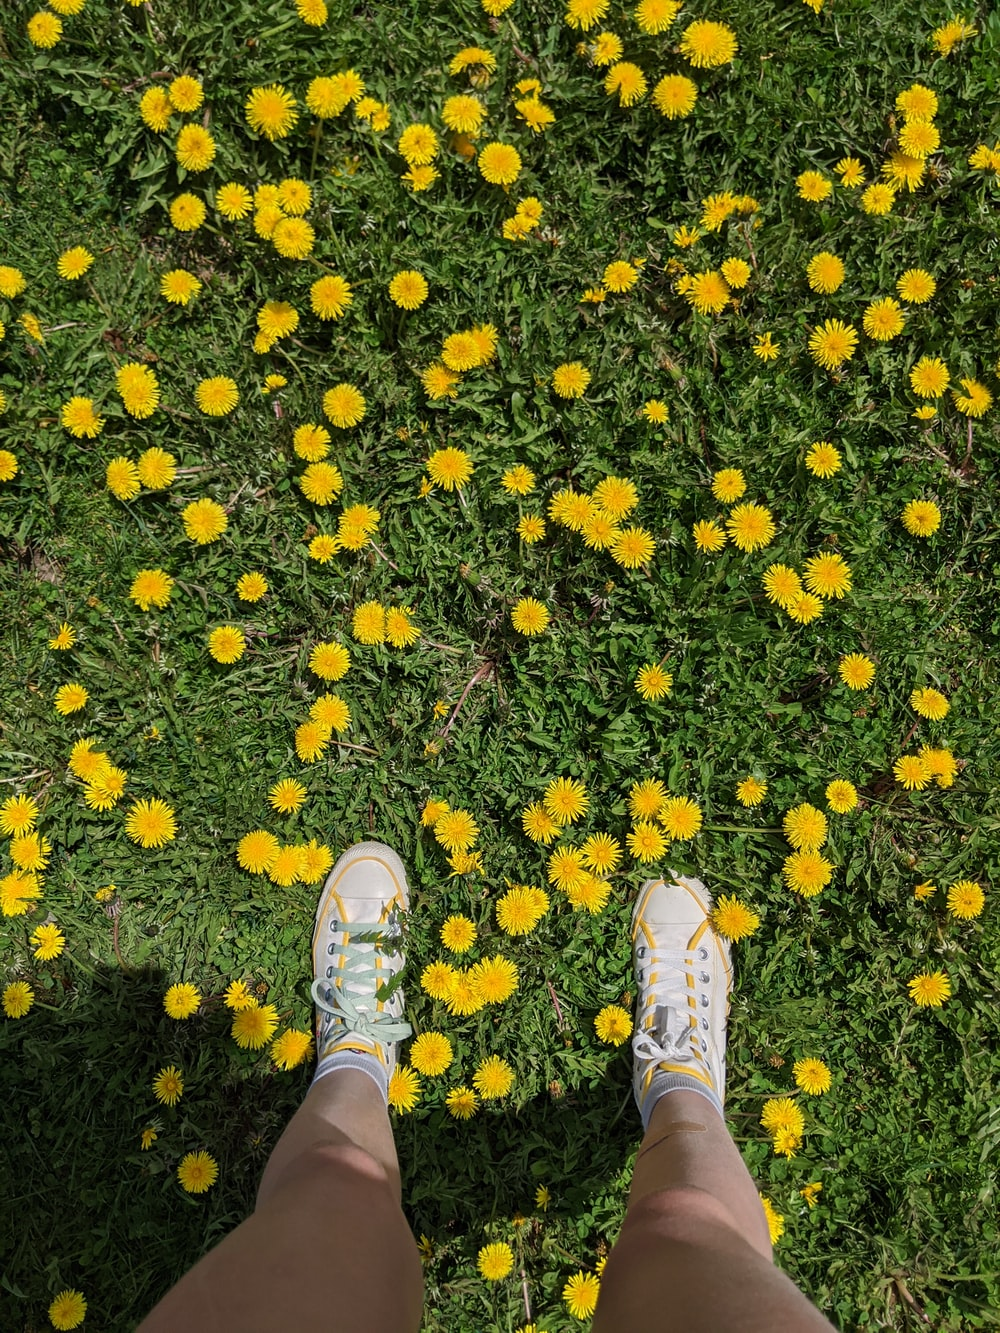 person in white sneakers standing on yellow leaves